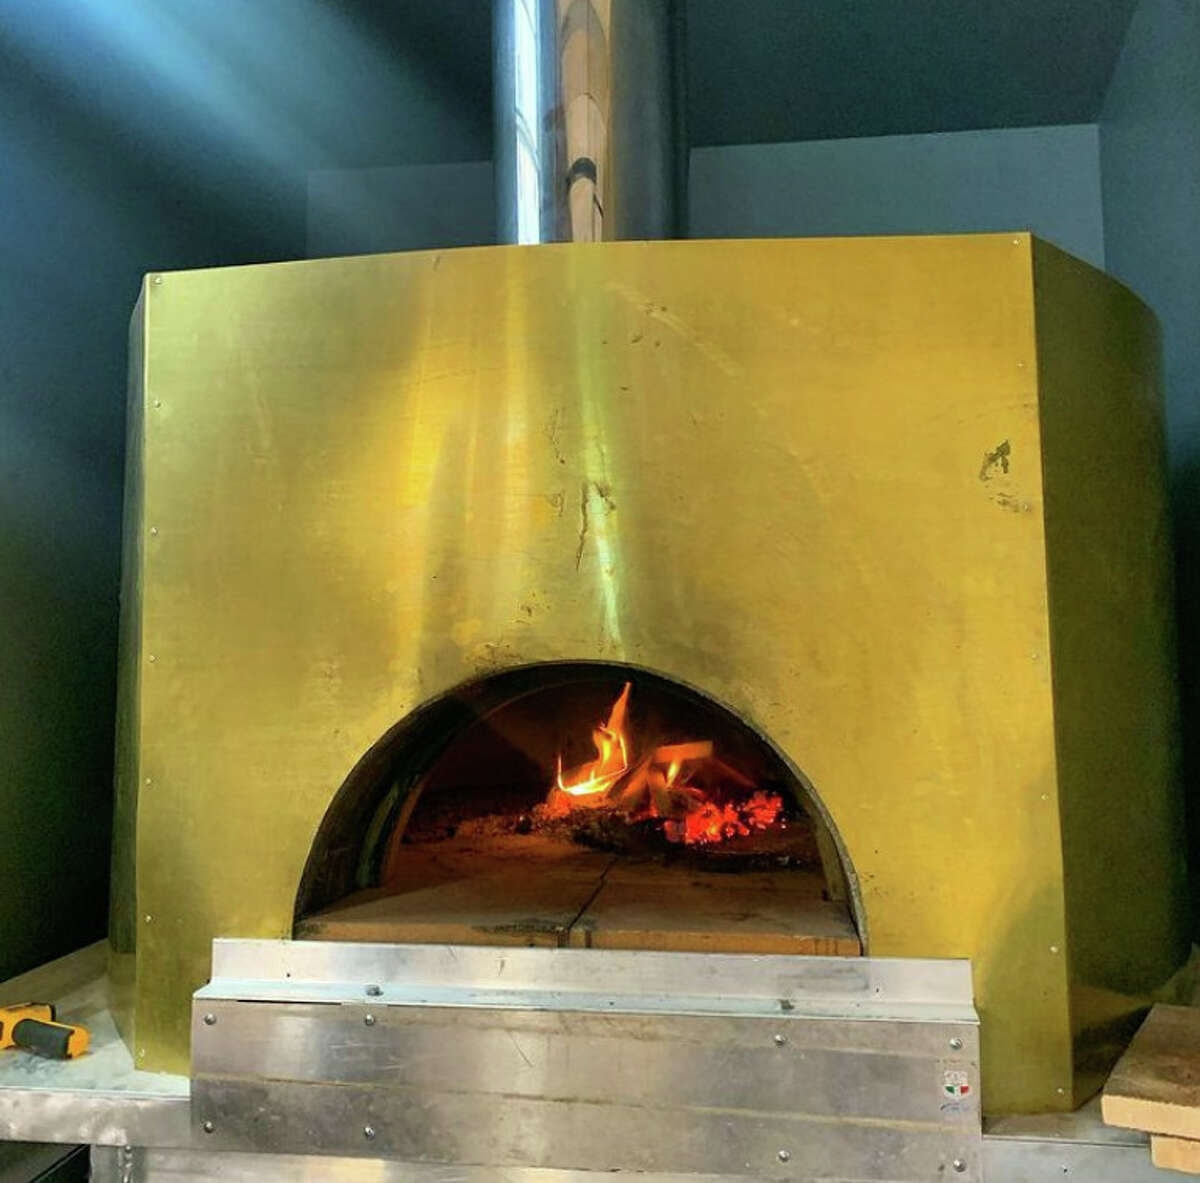 The pizza oven at the new DeFazio's x ADCo, a satellite of DeFazio's Pizzeria opening Friday, Sept. 3, 2021, at Albany Distilling Co.'s bar, located at 75 Livingston Ave., Albany.